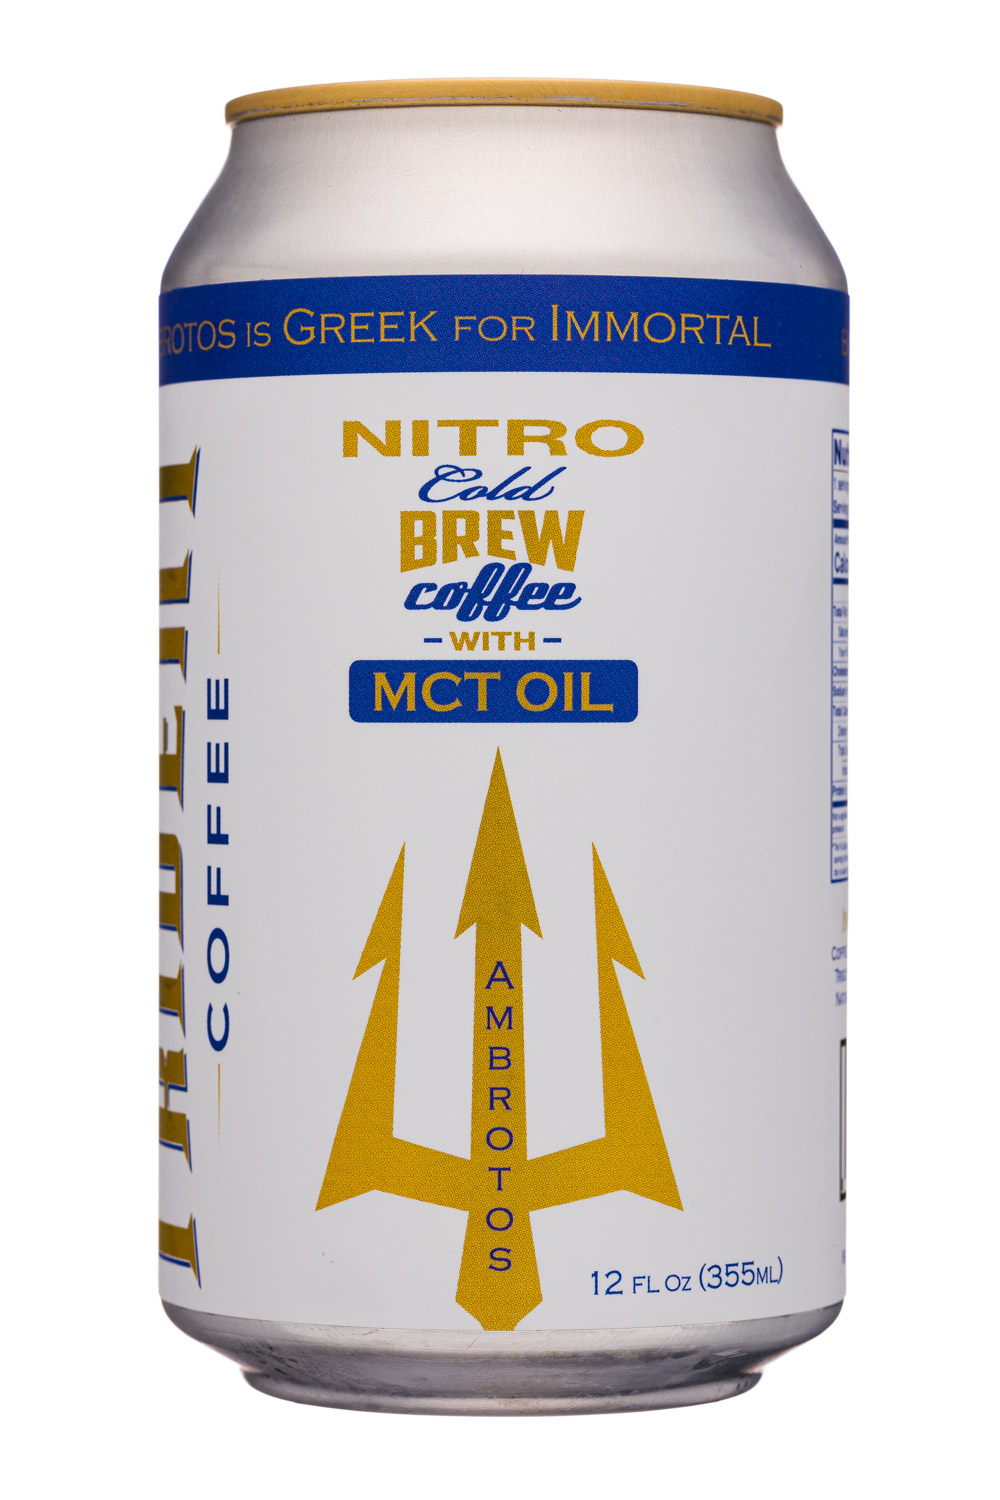 Nitro Cold Brew Coffee with MCT